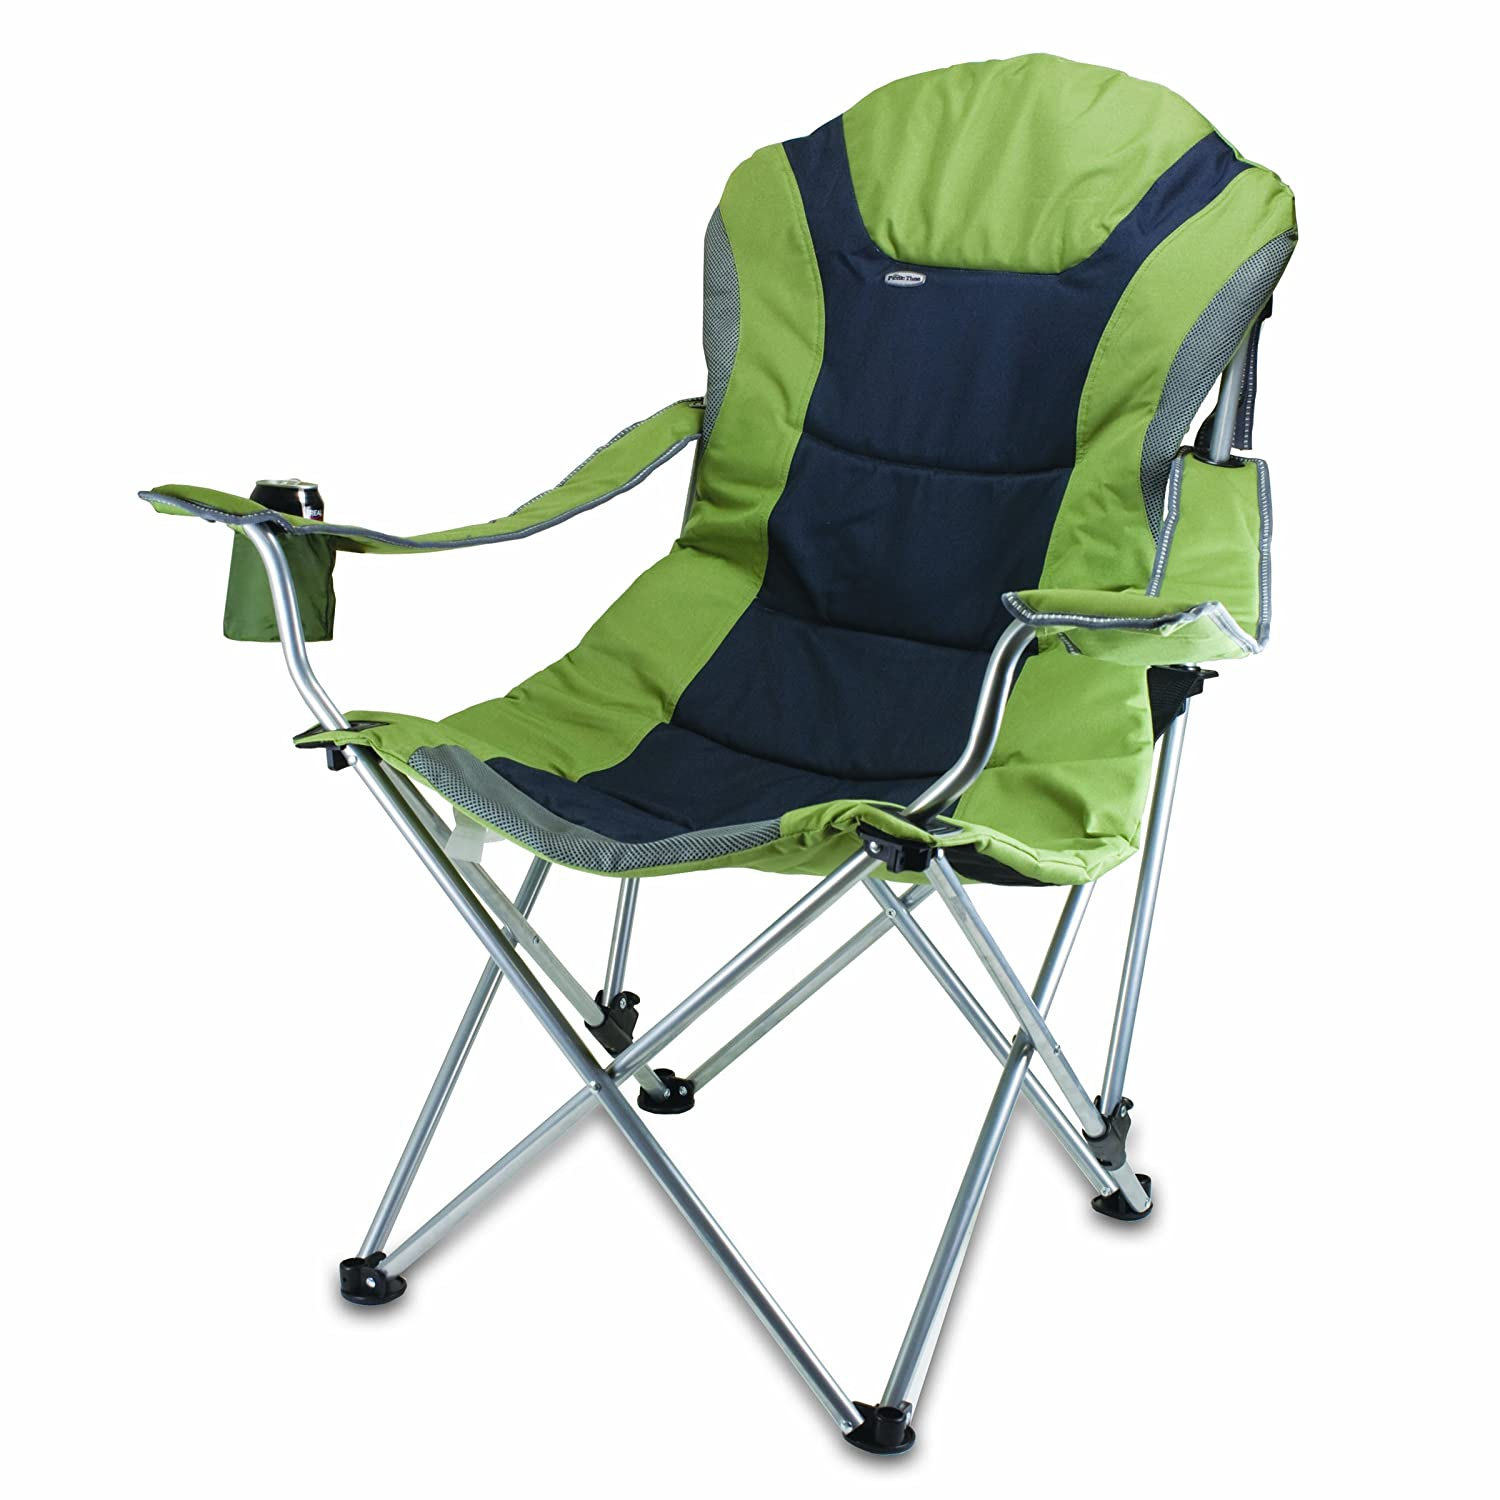 Dont Skimp On A Comfy Camp Chair Our Favorite Is TheA Picnic Time Reclining Which Durable Padded And Adjusts To Three Different